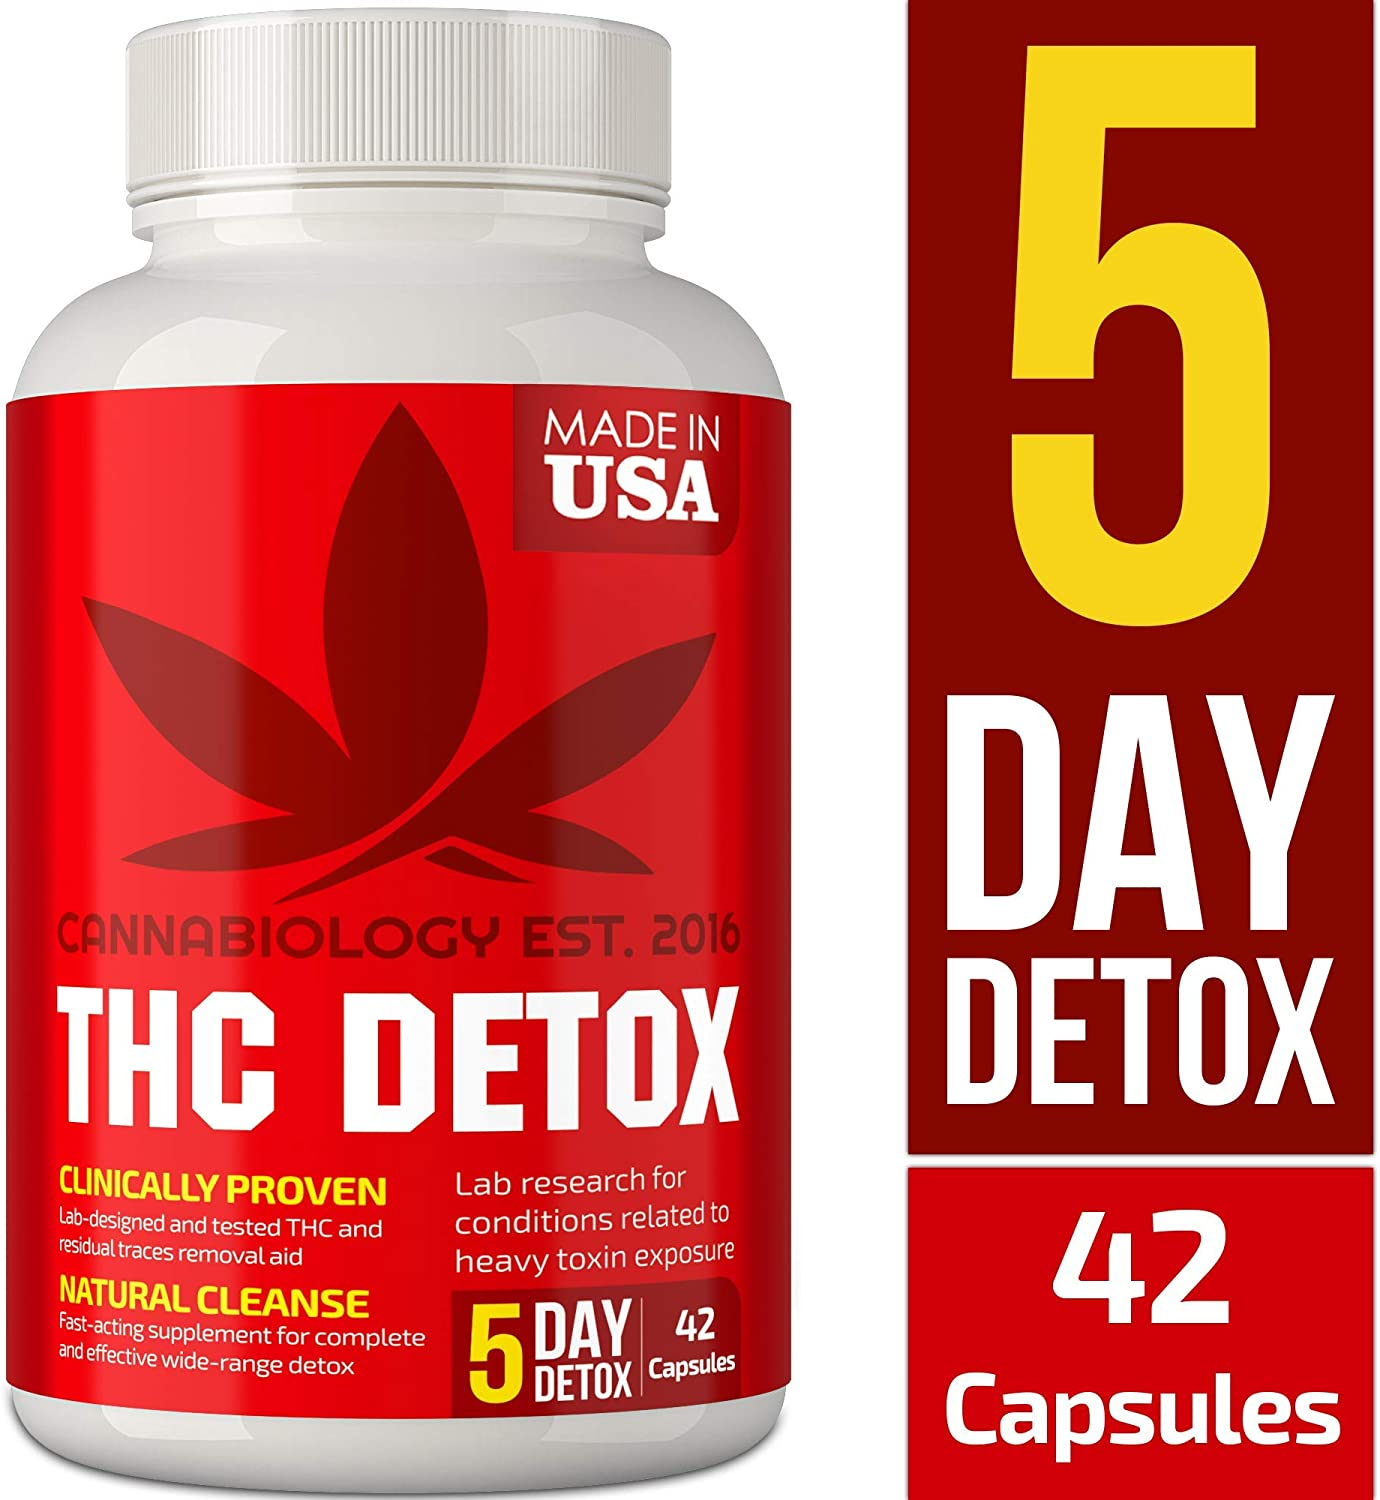 Detox Made in USA – 5 Day Detox – Bio-Cleanse Liver Detox, Urinary Tract Kidney Cleanse Broad-Spectrum Toxin Cleanse – Natural THC Remover Detox – Milk Thistle, Cranberry – 42 Vegan Capsules